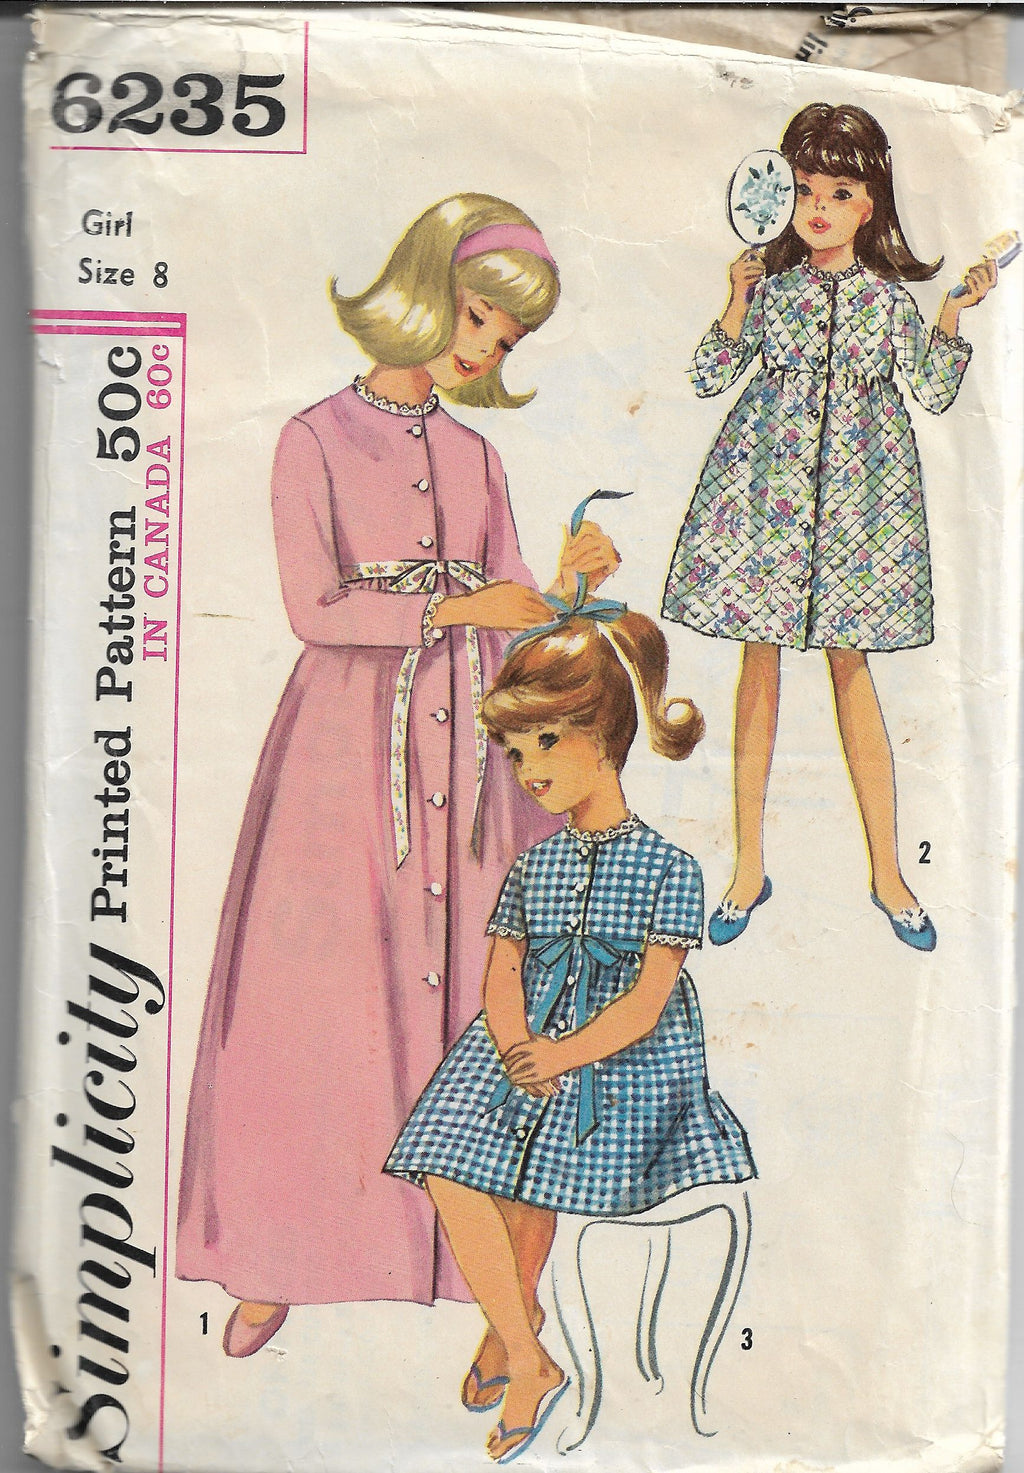 Simplicity 6235 Vintage Sewing Pattern 1960s Girls Robe Empire Waist - VintageStitching - Vintage Sewing Patterns